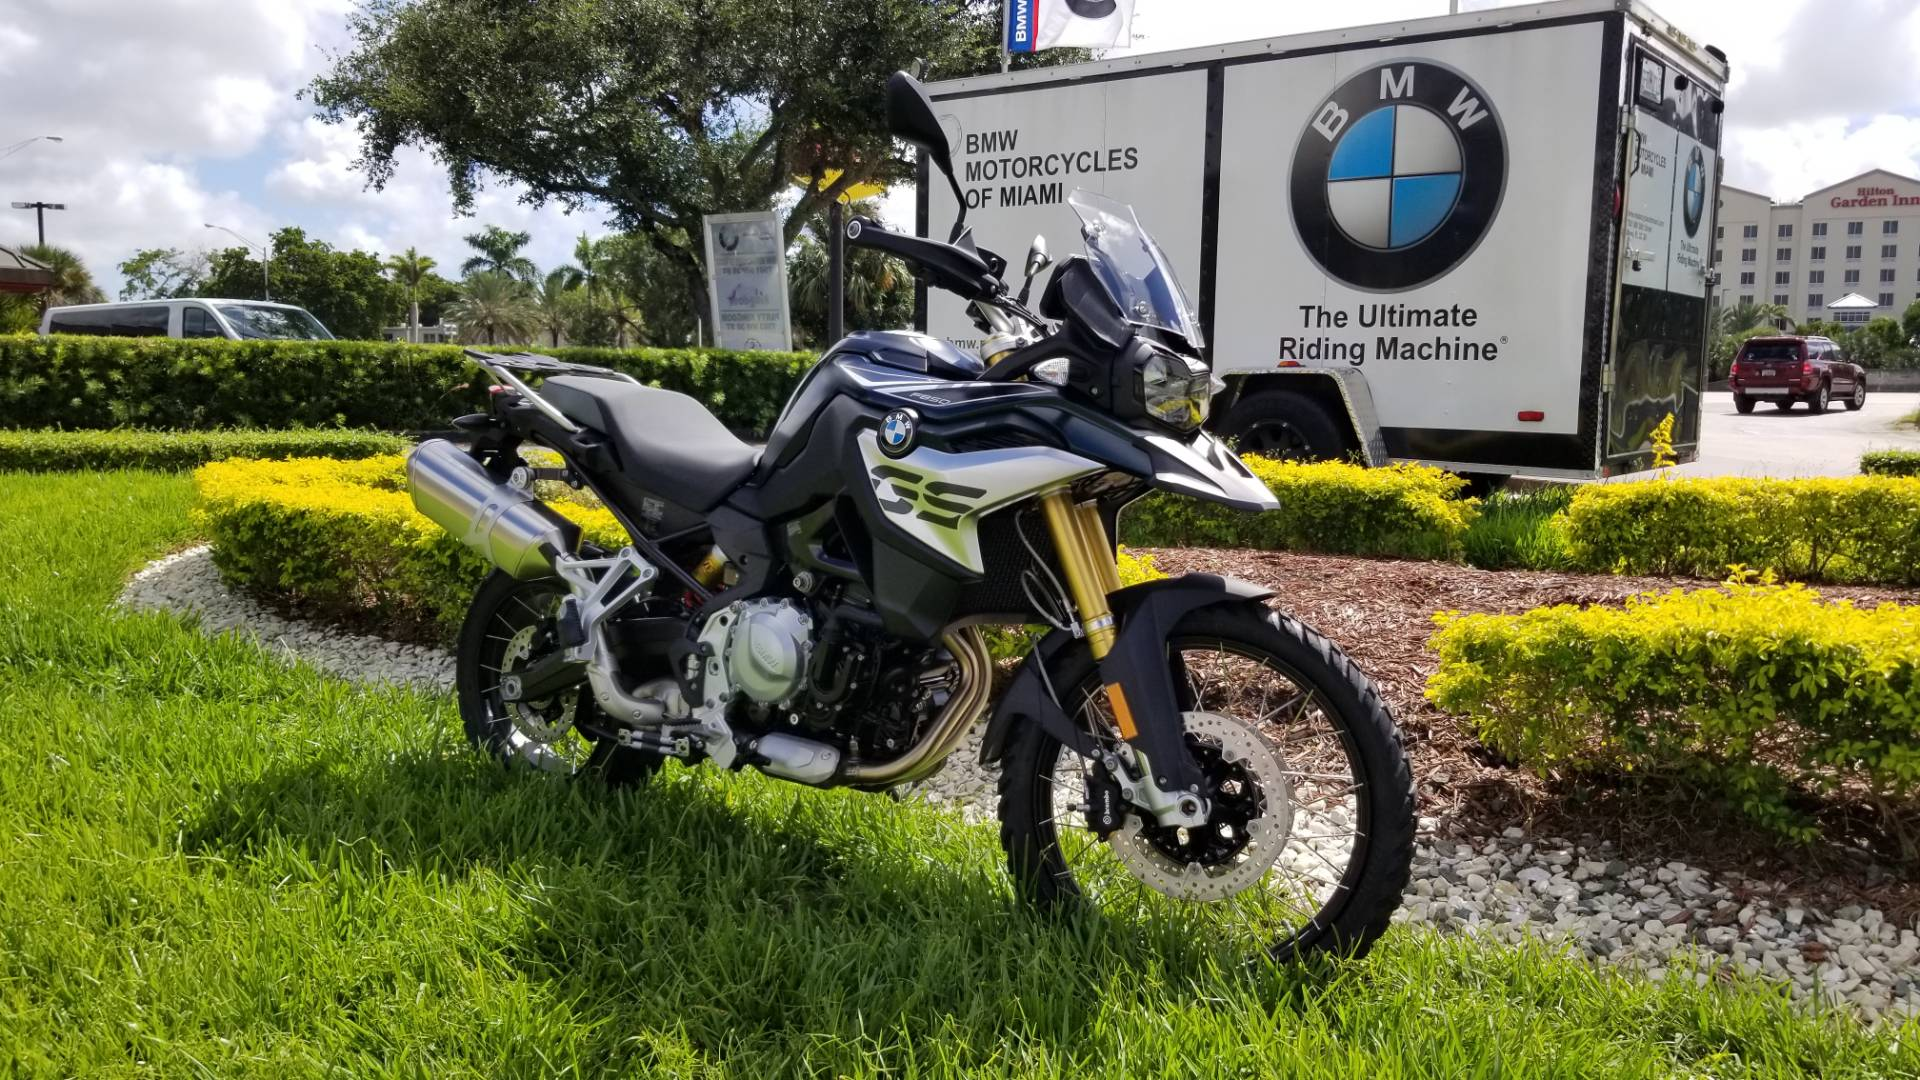 New 2019 BMW F 850 GS for sale, BMW F 850GS for sale, BMW Motorcycle F850GS, new BMW 850, Dual, BMW - Photo 15